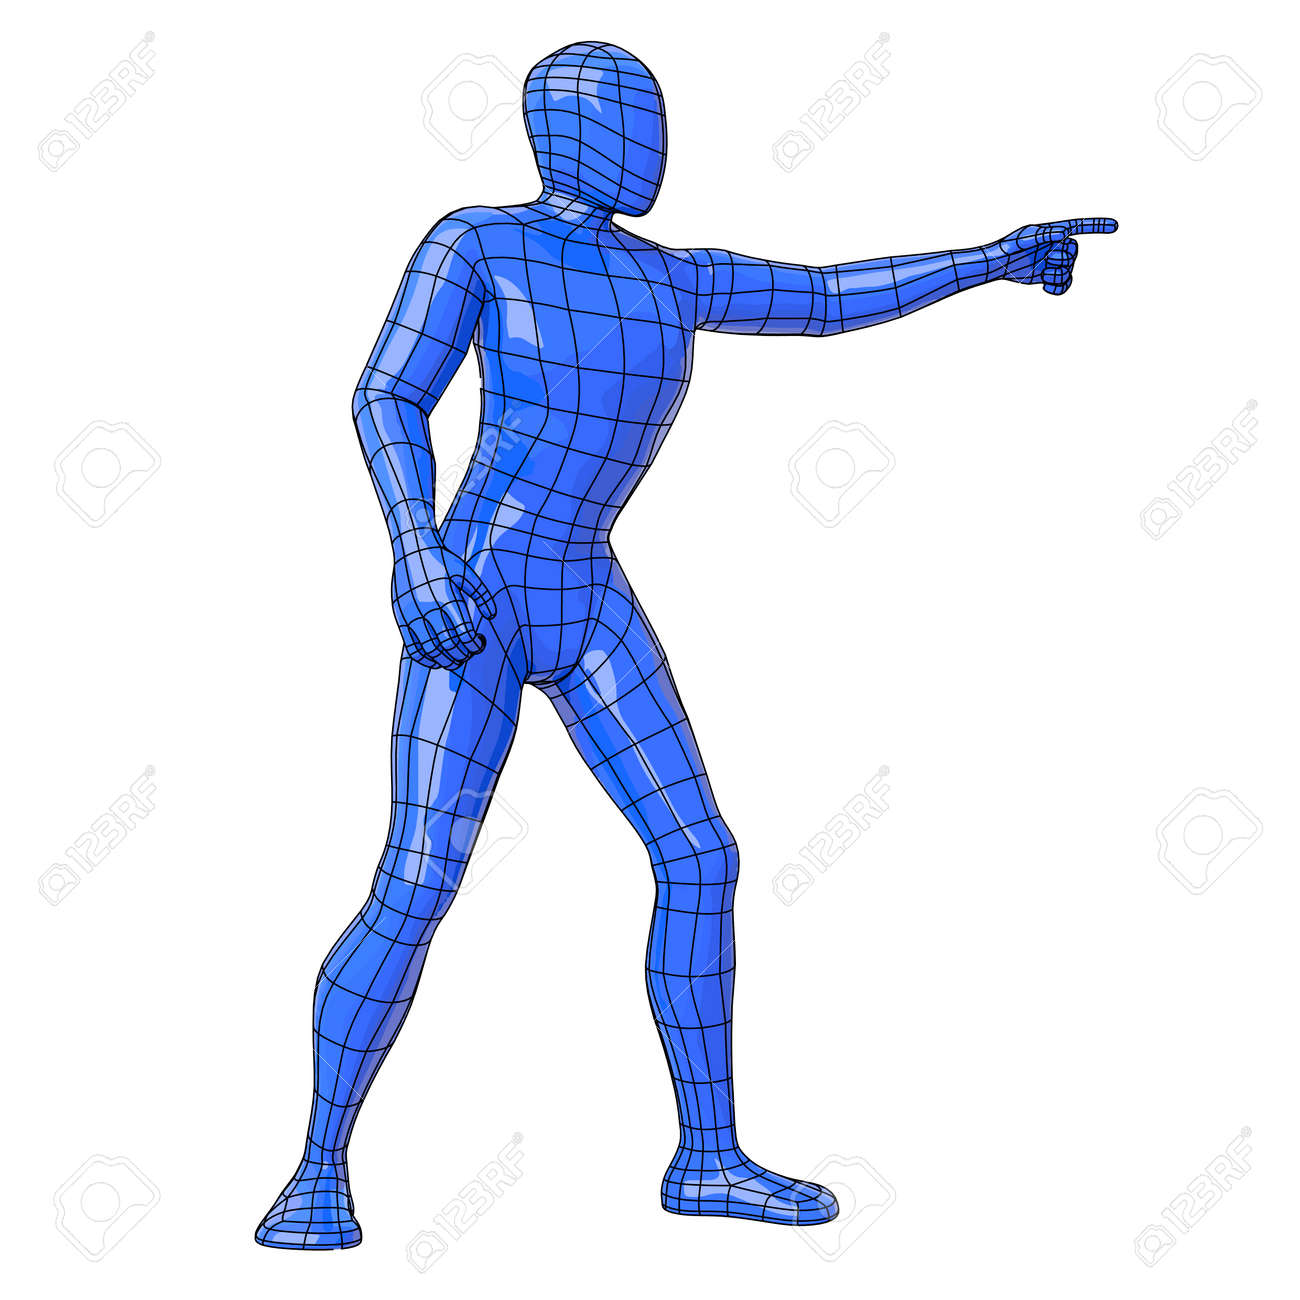 futuristic wireframe human figure pointing with his hand to